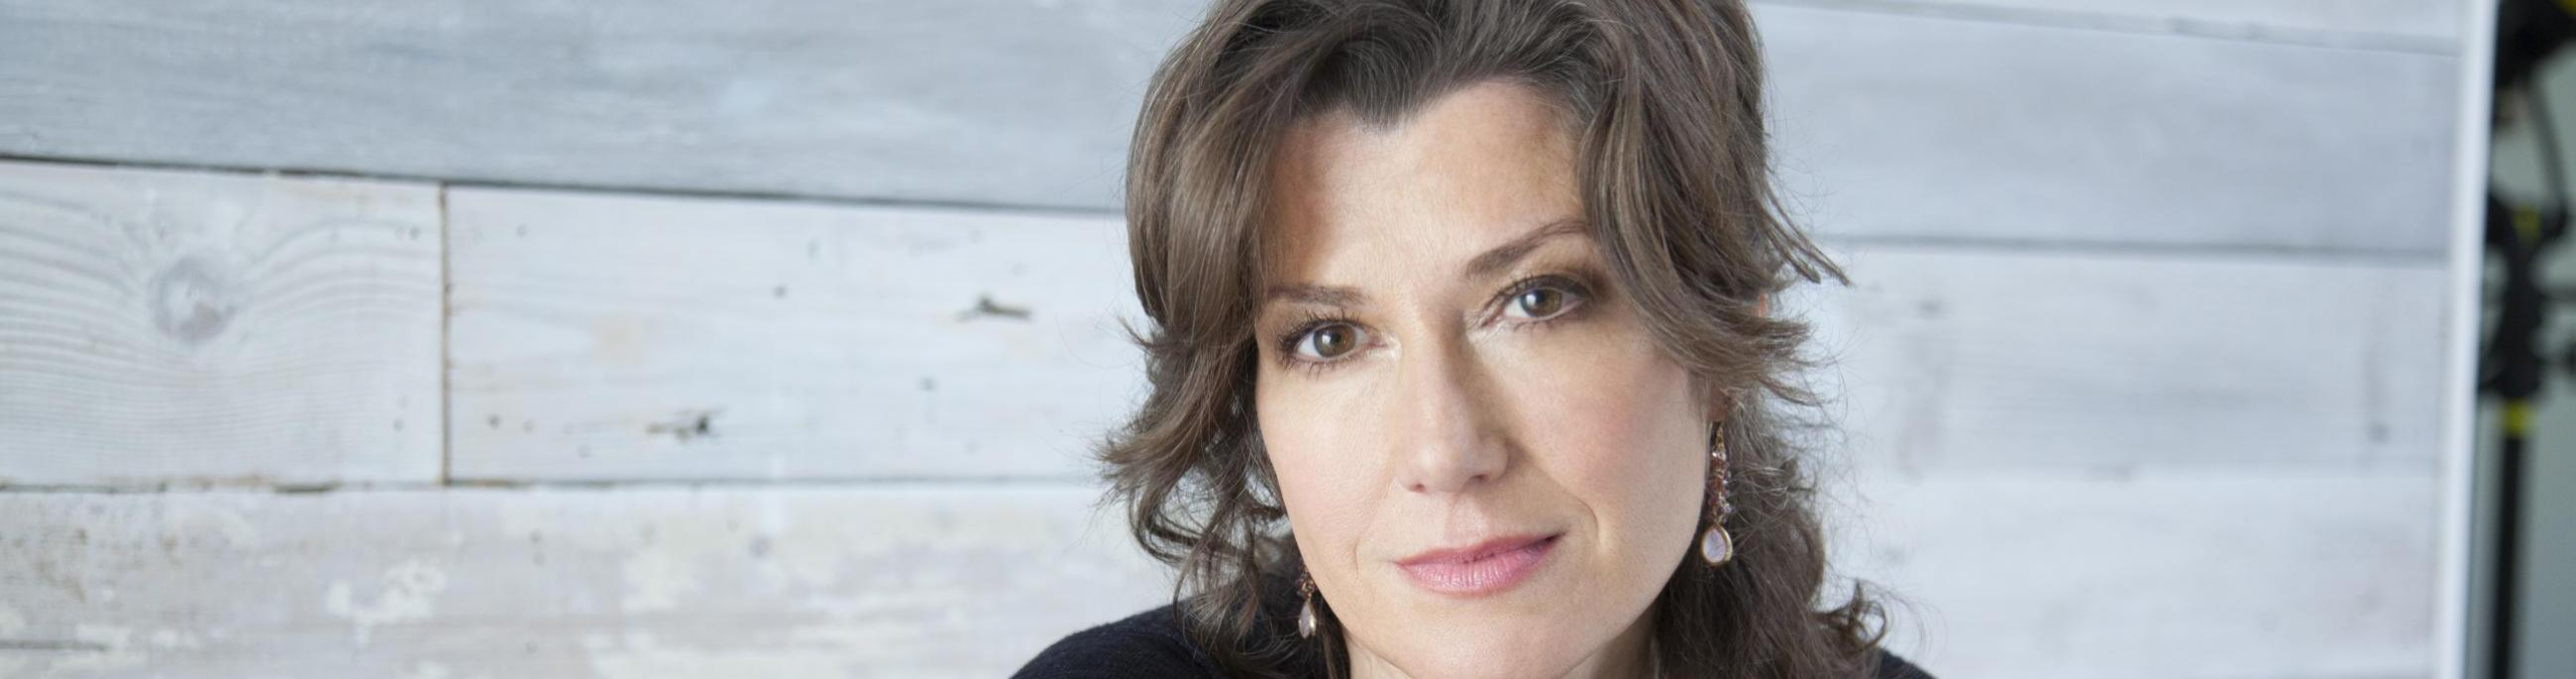 Amy Grant is coming to Chandler Center for the Arts